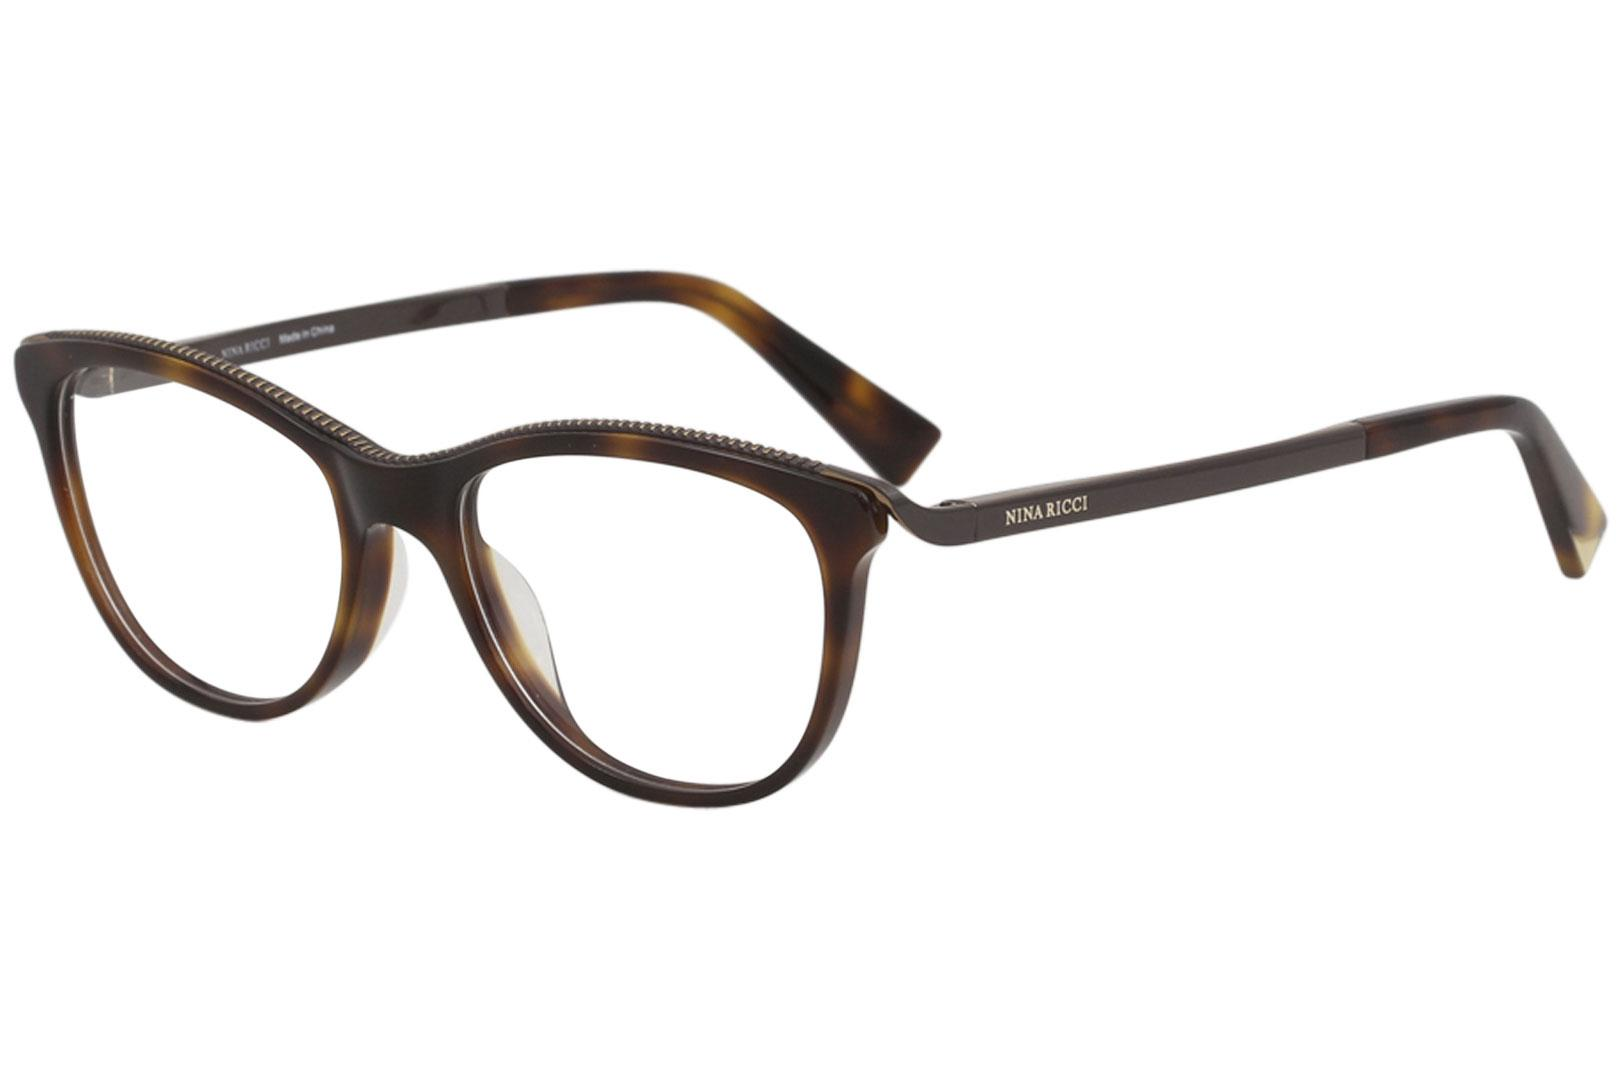 Image of Nina Ricci Eyeglasses VNR028 VNR/028 0752 Havana Full Rim Optical Frame 51mm - Dark Havana   0752 - Lens 51 Bridge 18 Temple 135mm